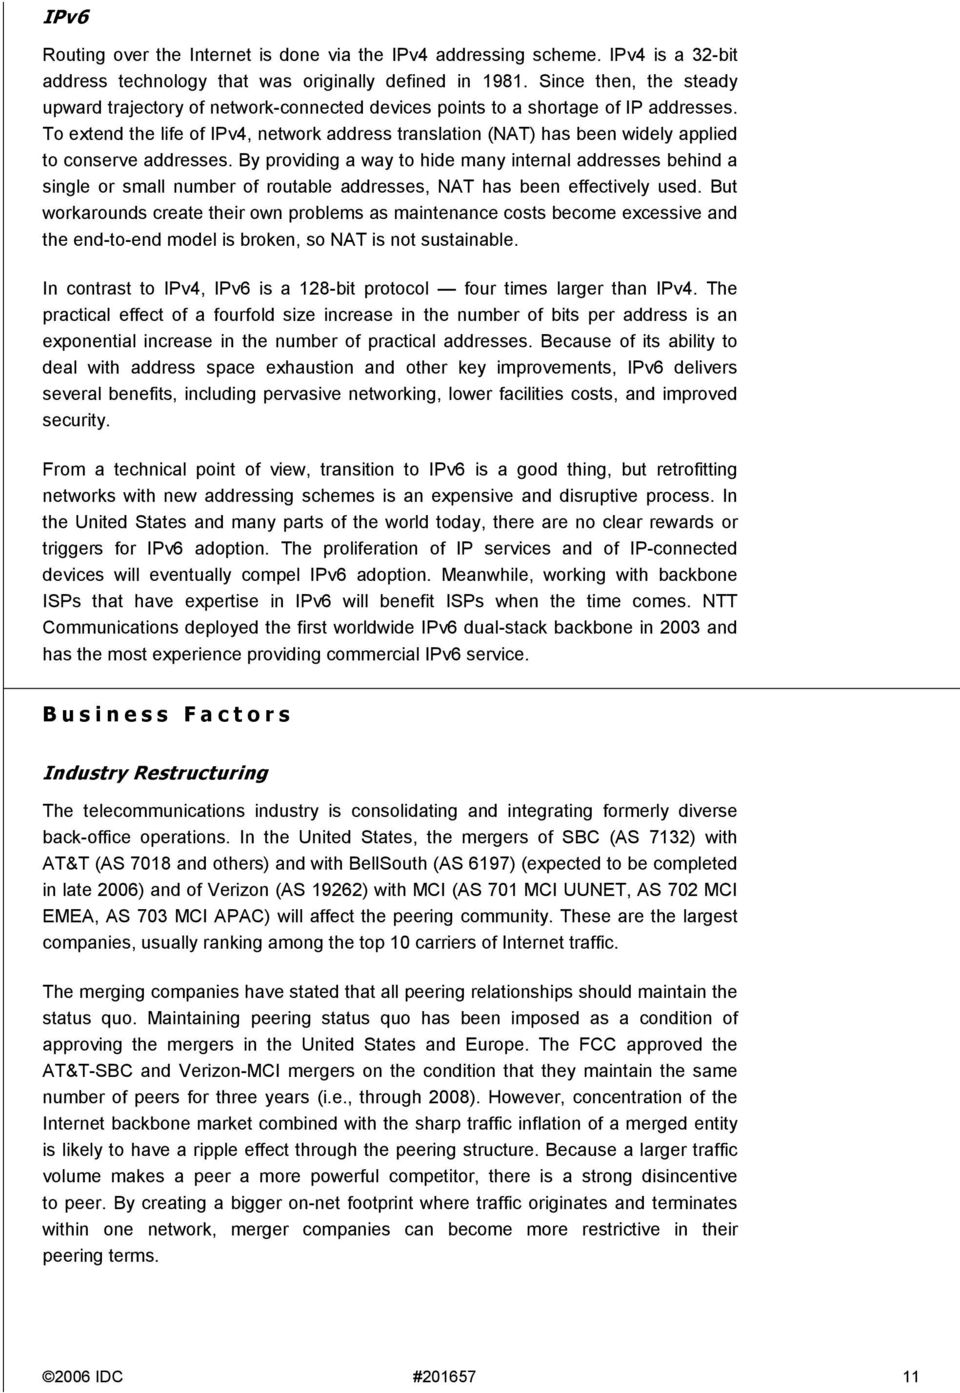 To extend the life of IPv4, network address translation (NAT) has been widely applied to conserve addresses.